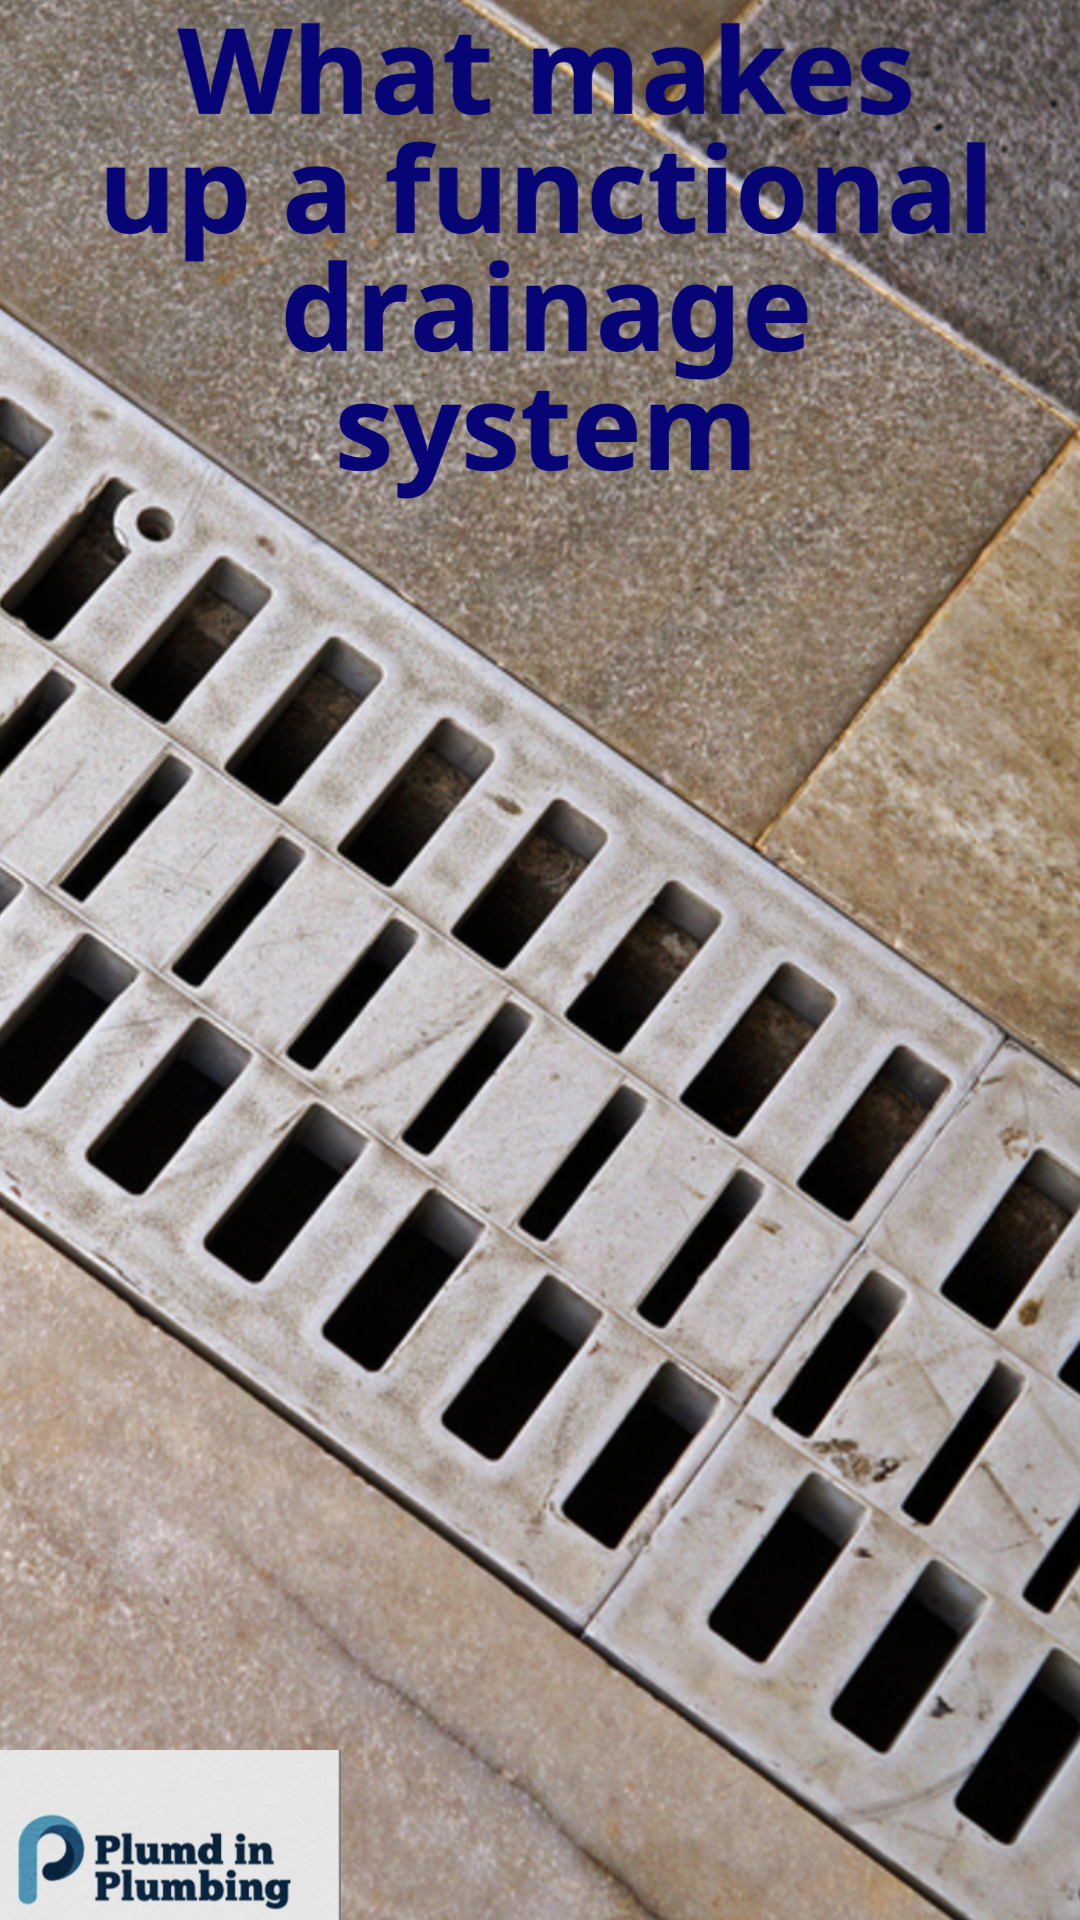 what makes up a functional drainage system